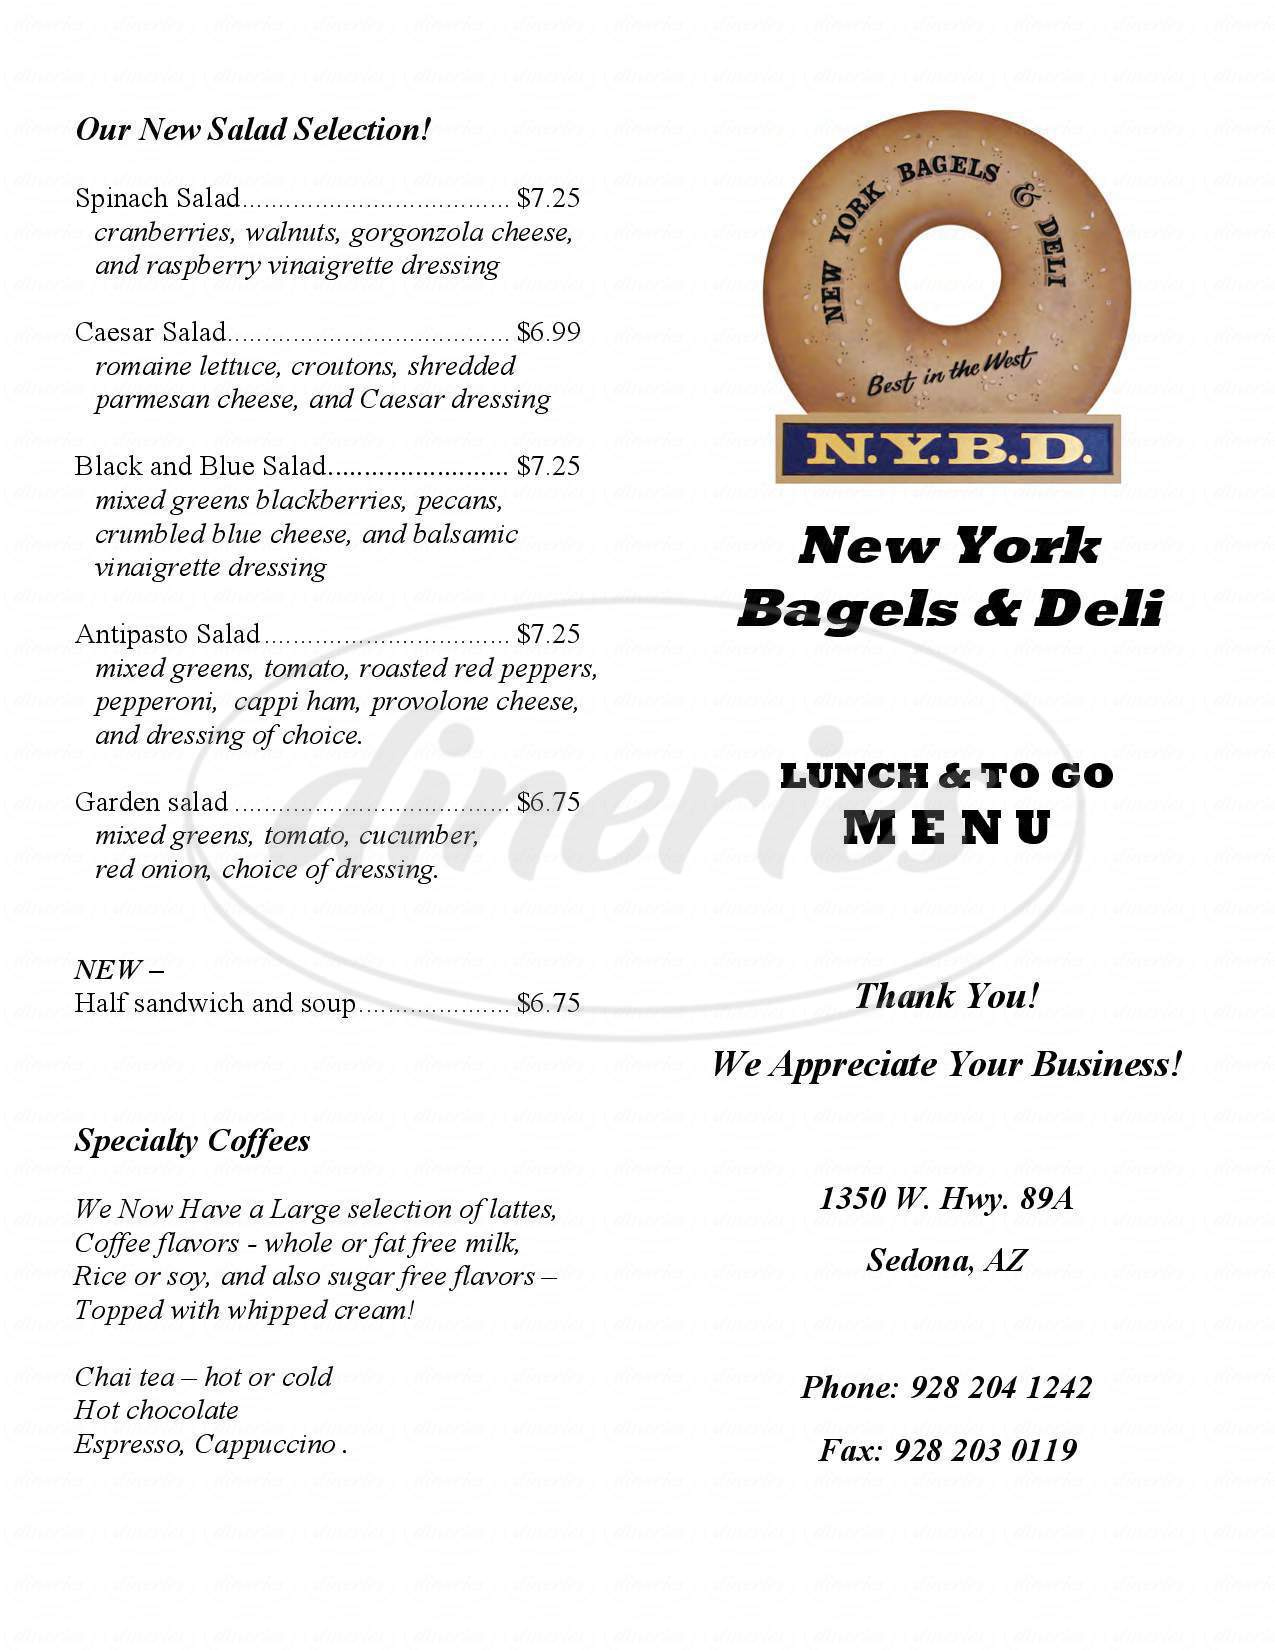 menu for New York Bagels